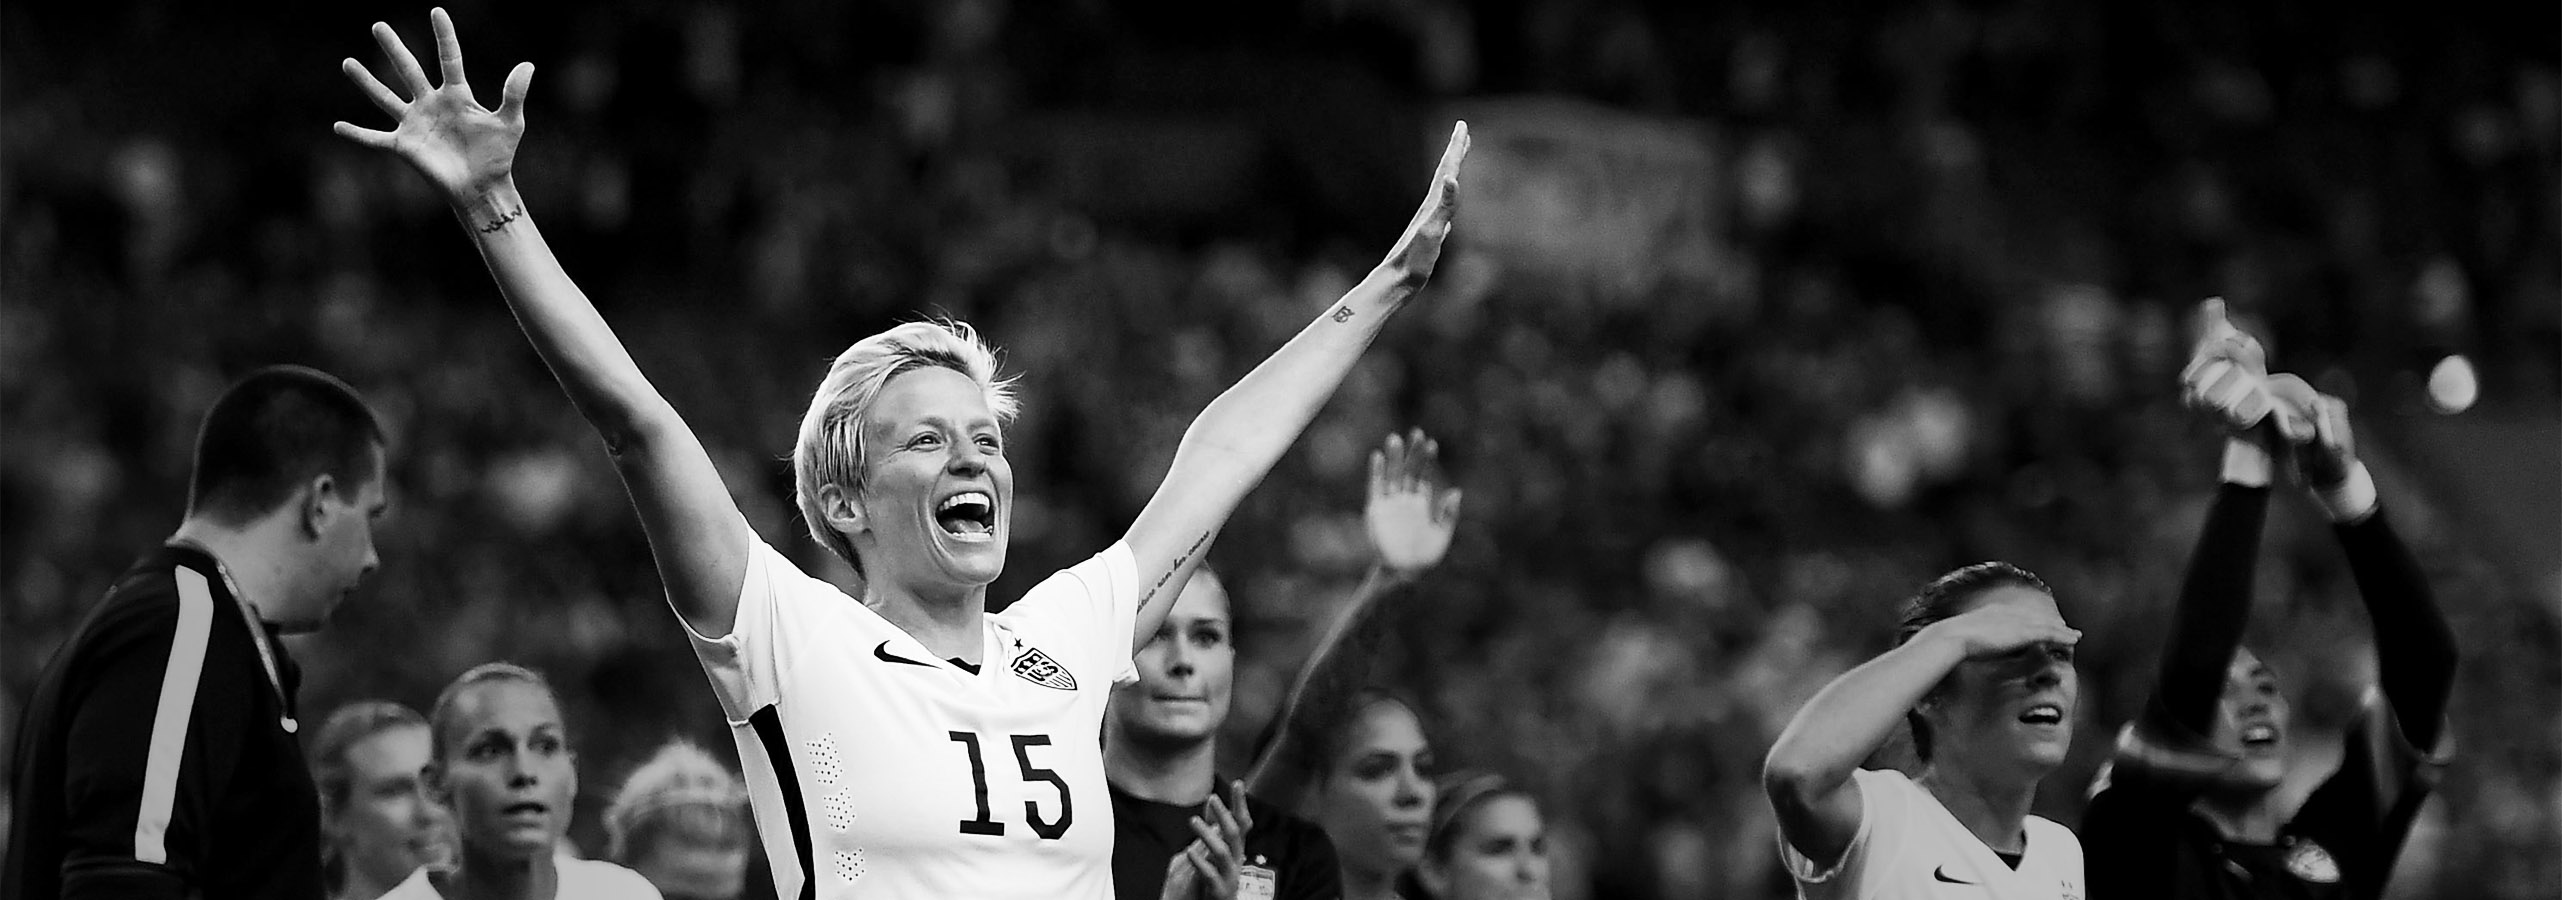 MONTREAL, QC - JUNE 30:  Megan Rapinoe of USA celebrates with team mates after winning the FIFA Women's World Cup 2015 Semi Final match between USA and Germany at Olympic Stadium on June 30, 2015 in Montreal, Canada.  (Photo by Lars Baron - FIFA/FIFA via Getty Images)